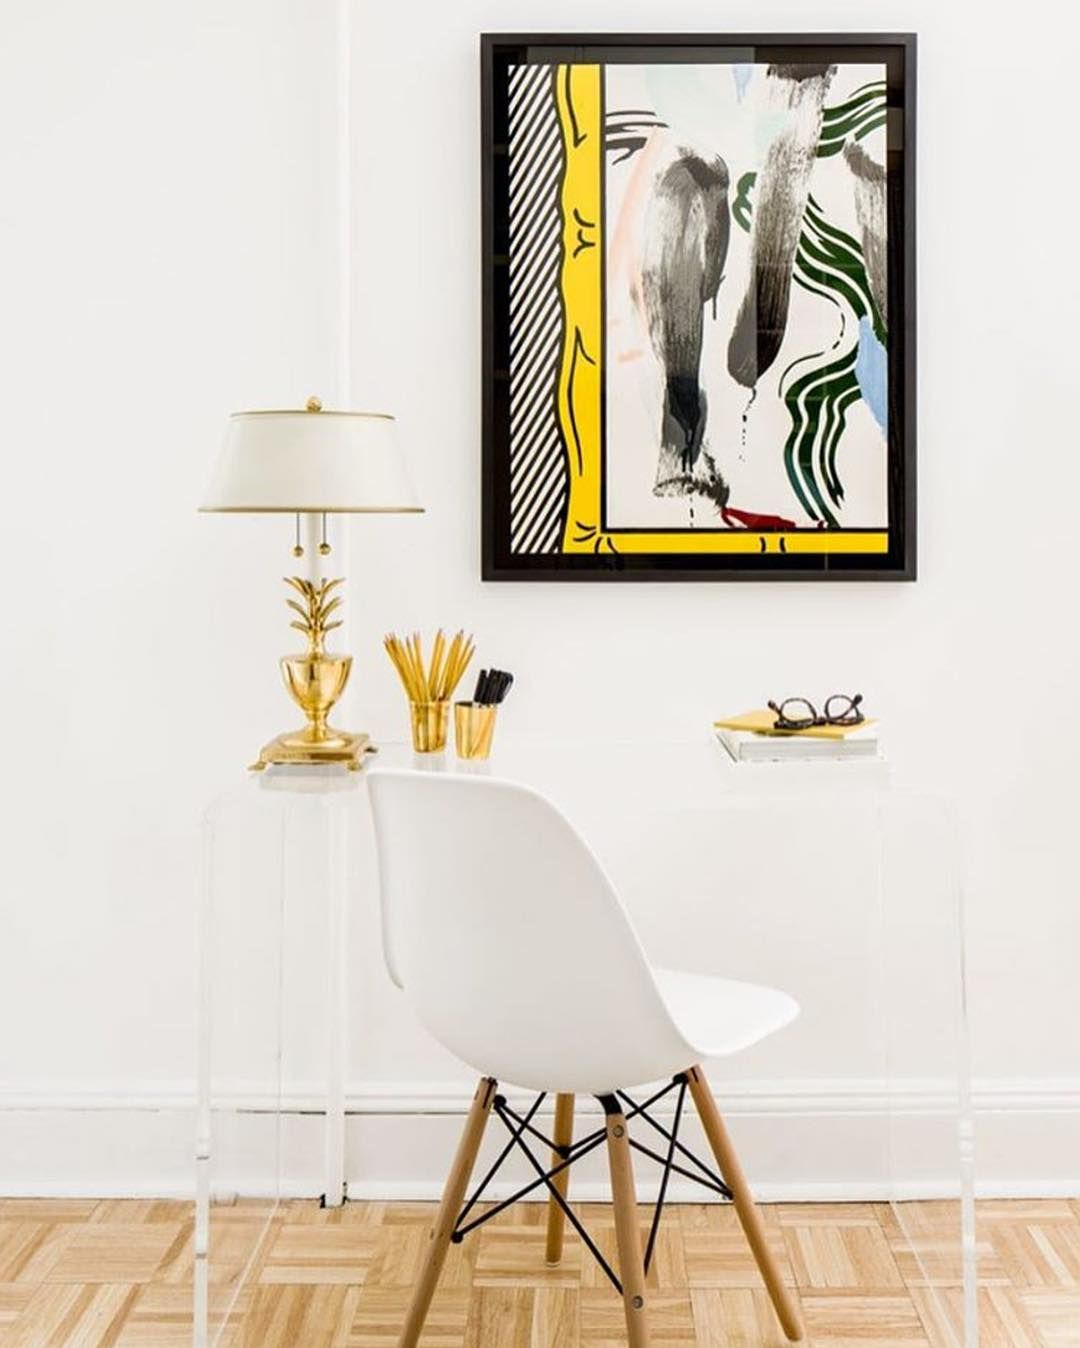 A little art wall deco will liven up any corner of your